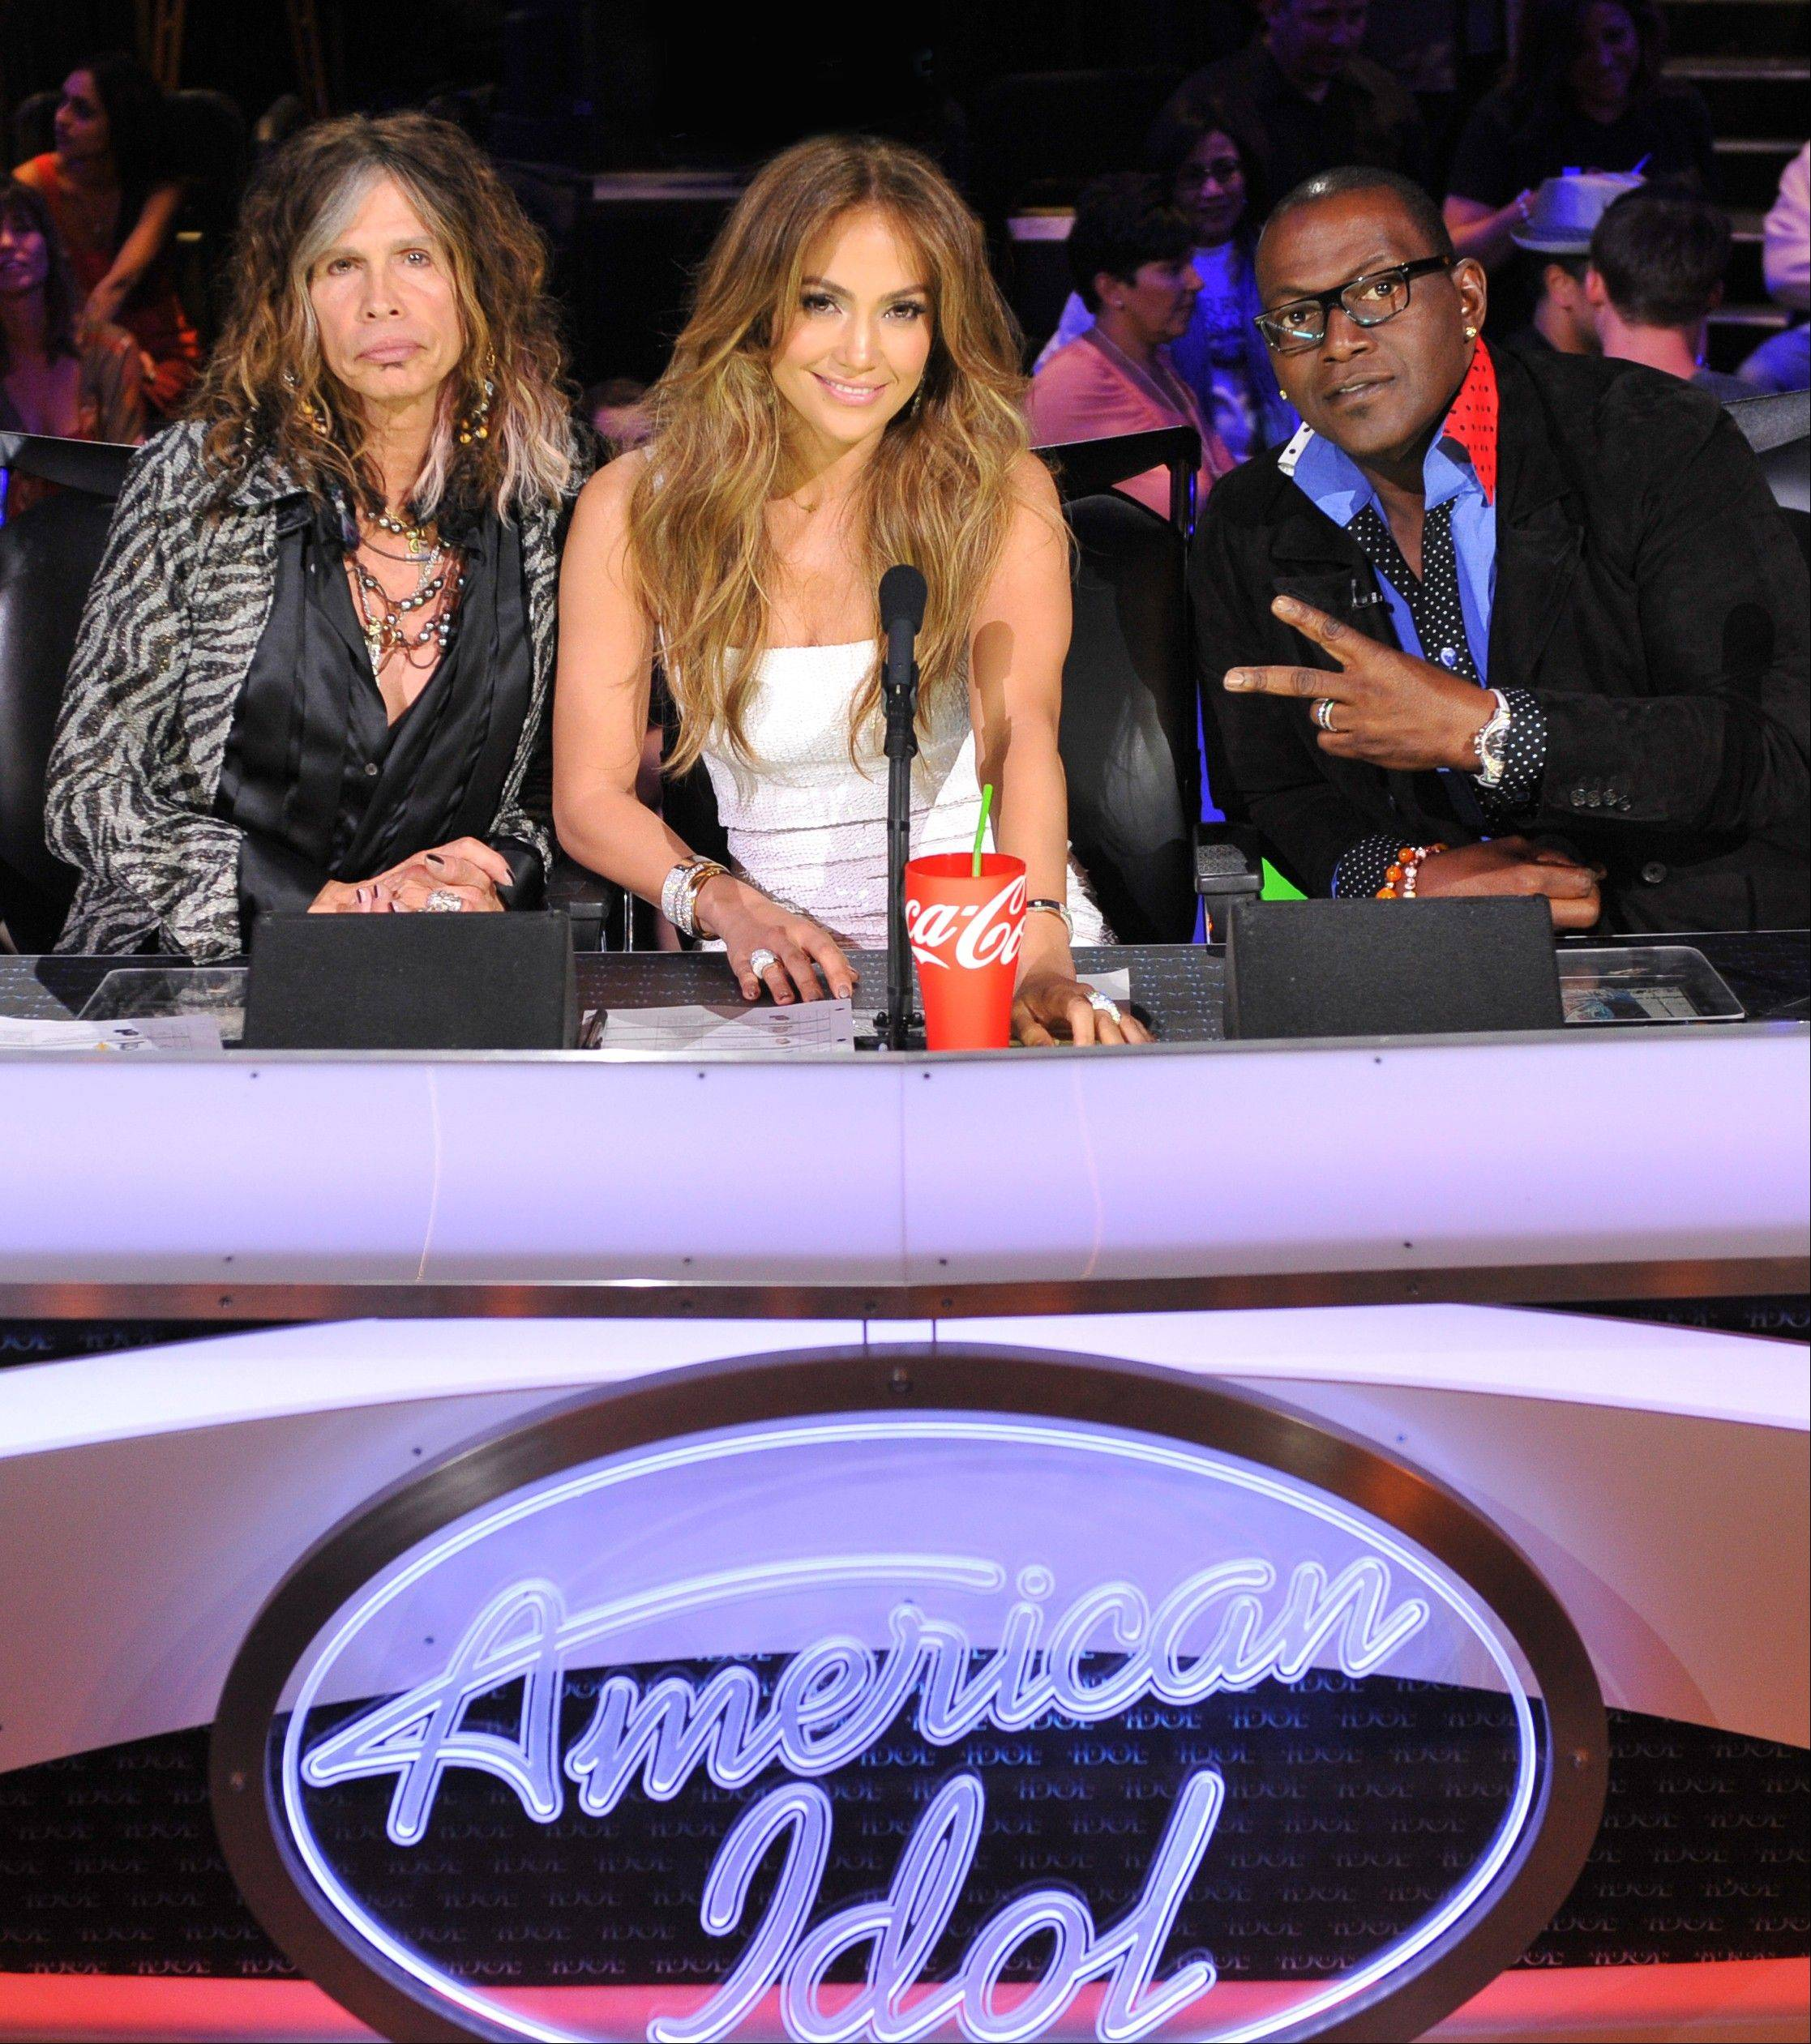 """American Idol"" judges, from left, Steven Tyler, Jennifer Lopez and Randy Jackson are shown on the set of the singing competition series, ""American Idol,"" in Los Angeles. Tyler announced Thursday that he will not be returning as a judge on the singing competition series ""American Idol."" Tyler served as a judge with singer/actress Jennifer Lopez and Randy Jackson on the 10th and 11th season of the series."